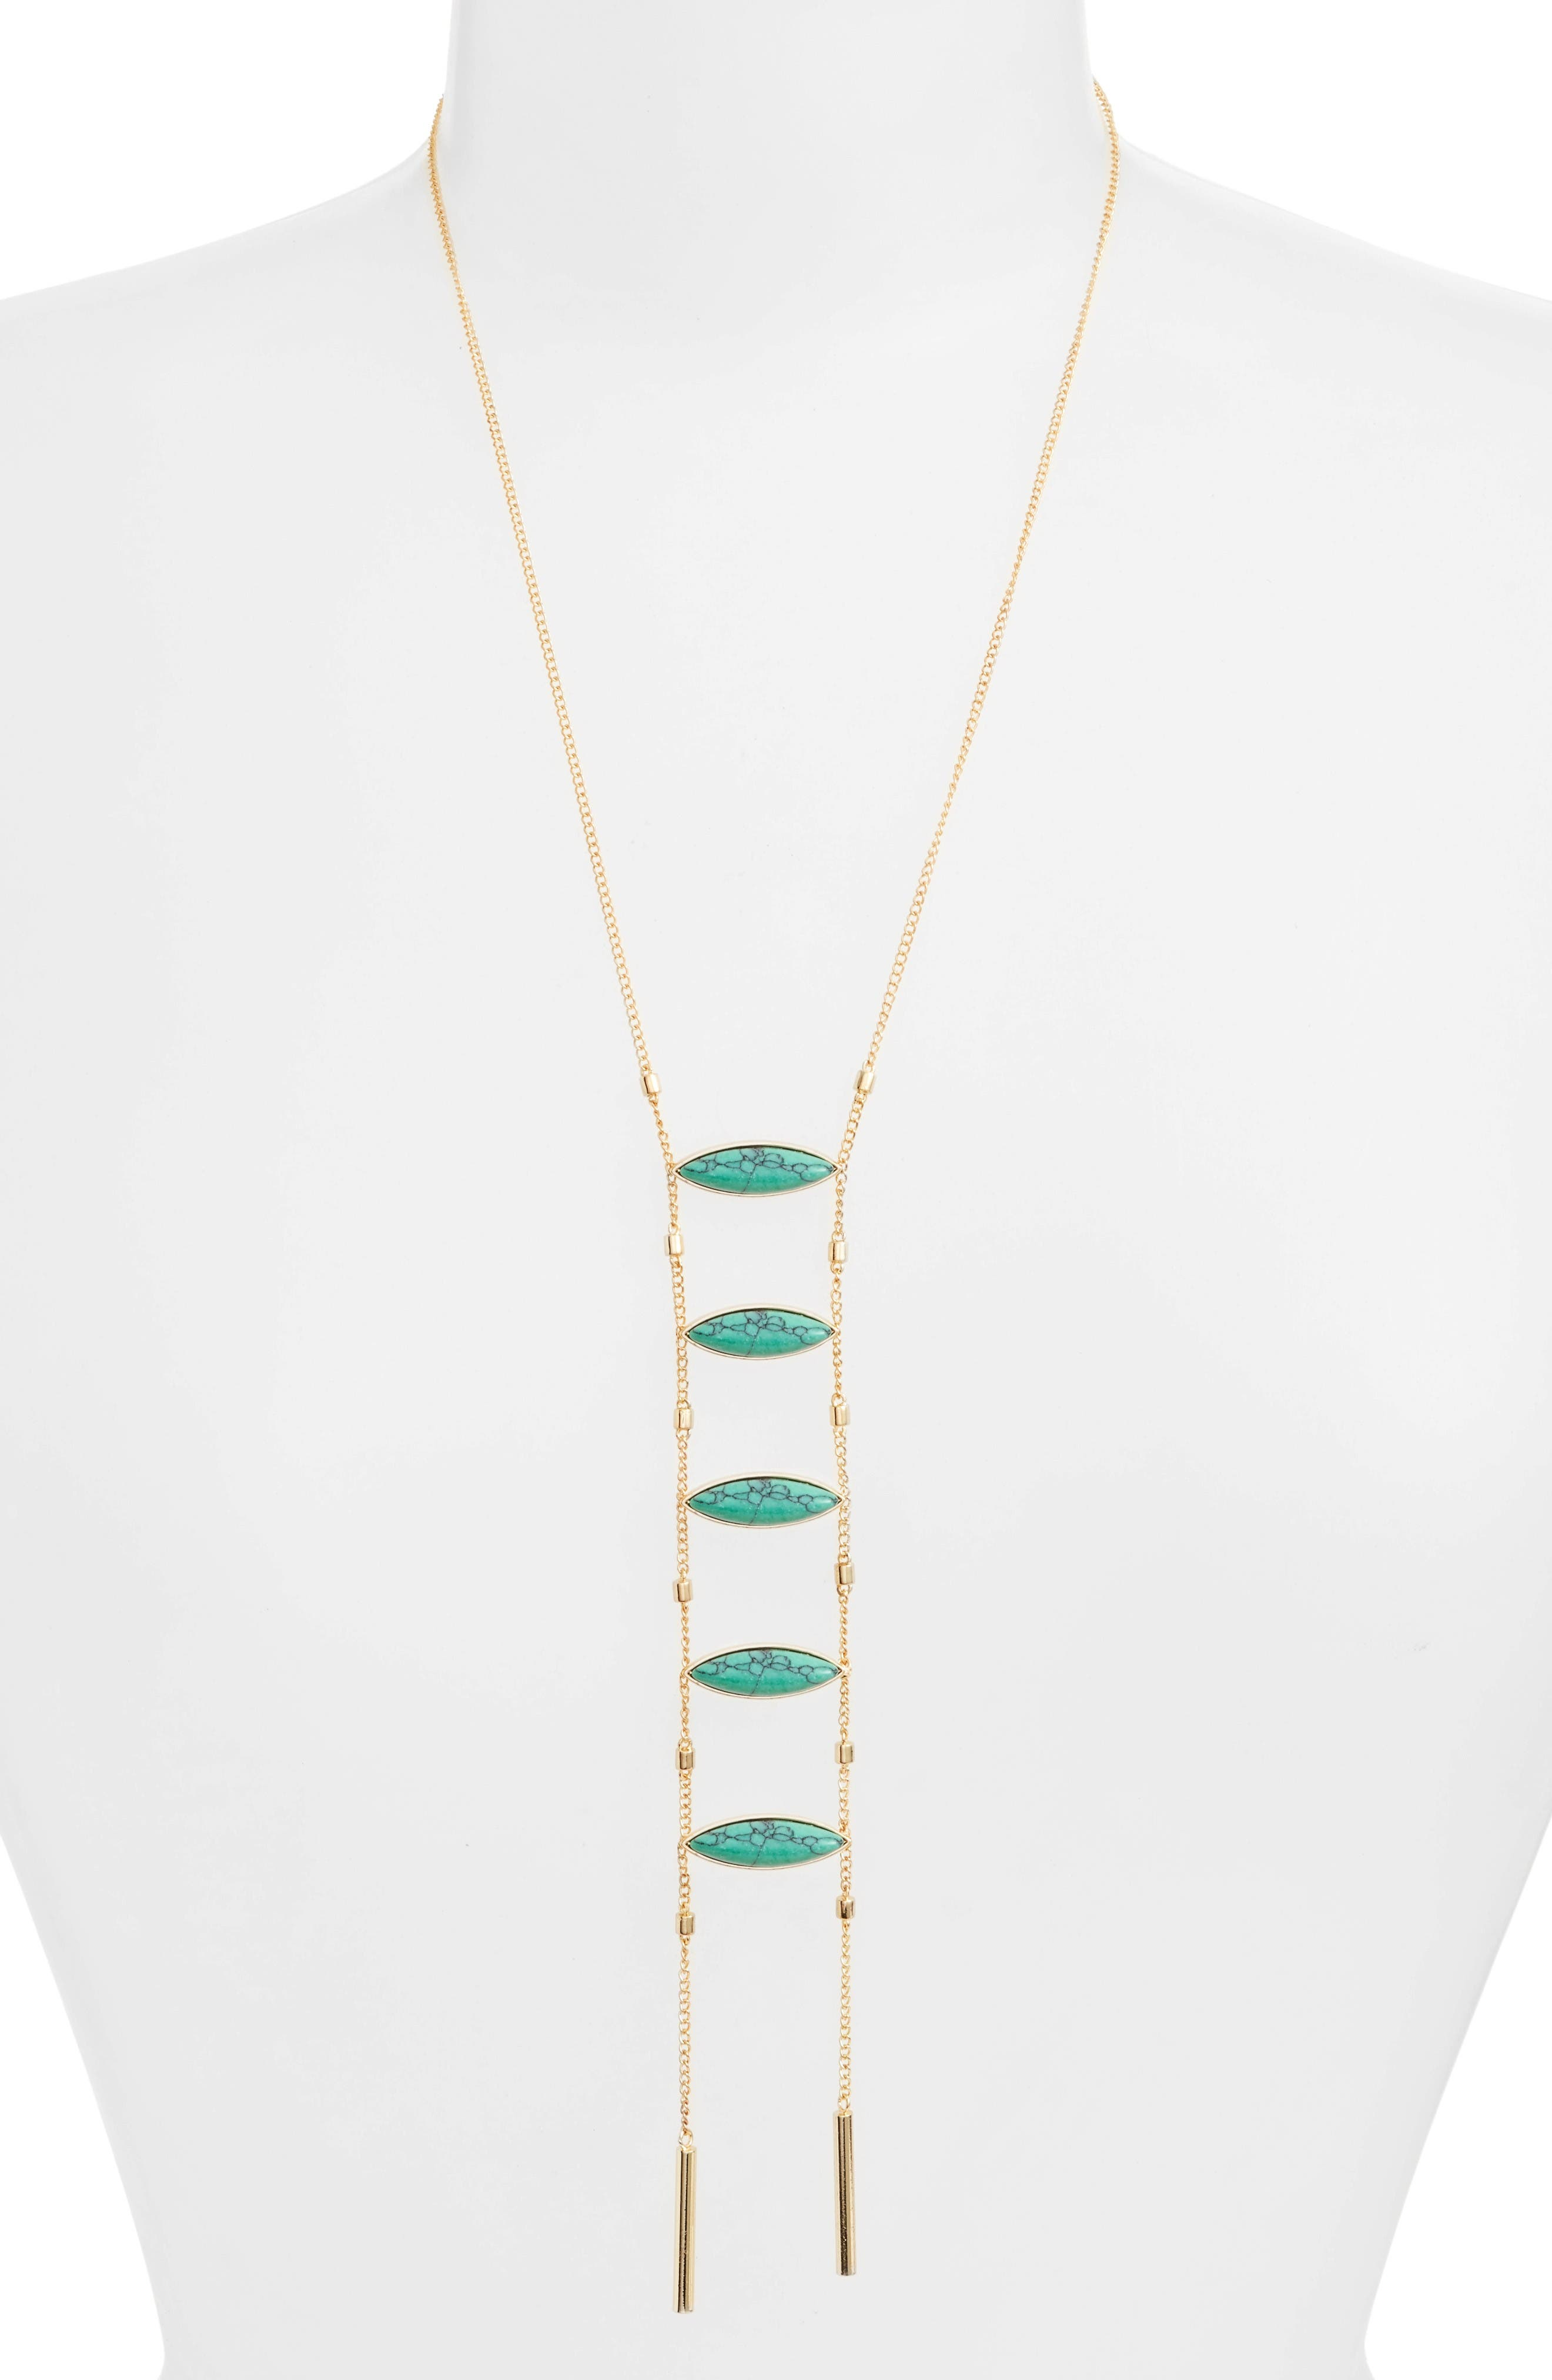 Camila Necklace,                             Main thumbnail 1, color,                             Gold / Turquoise